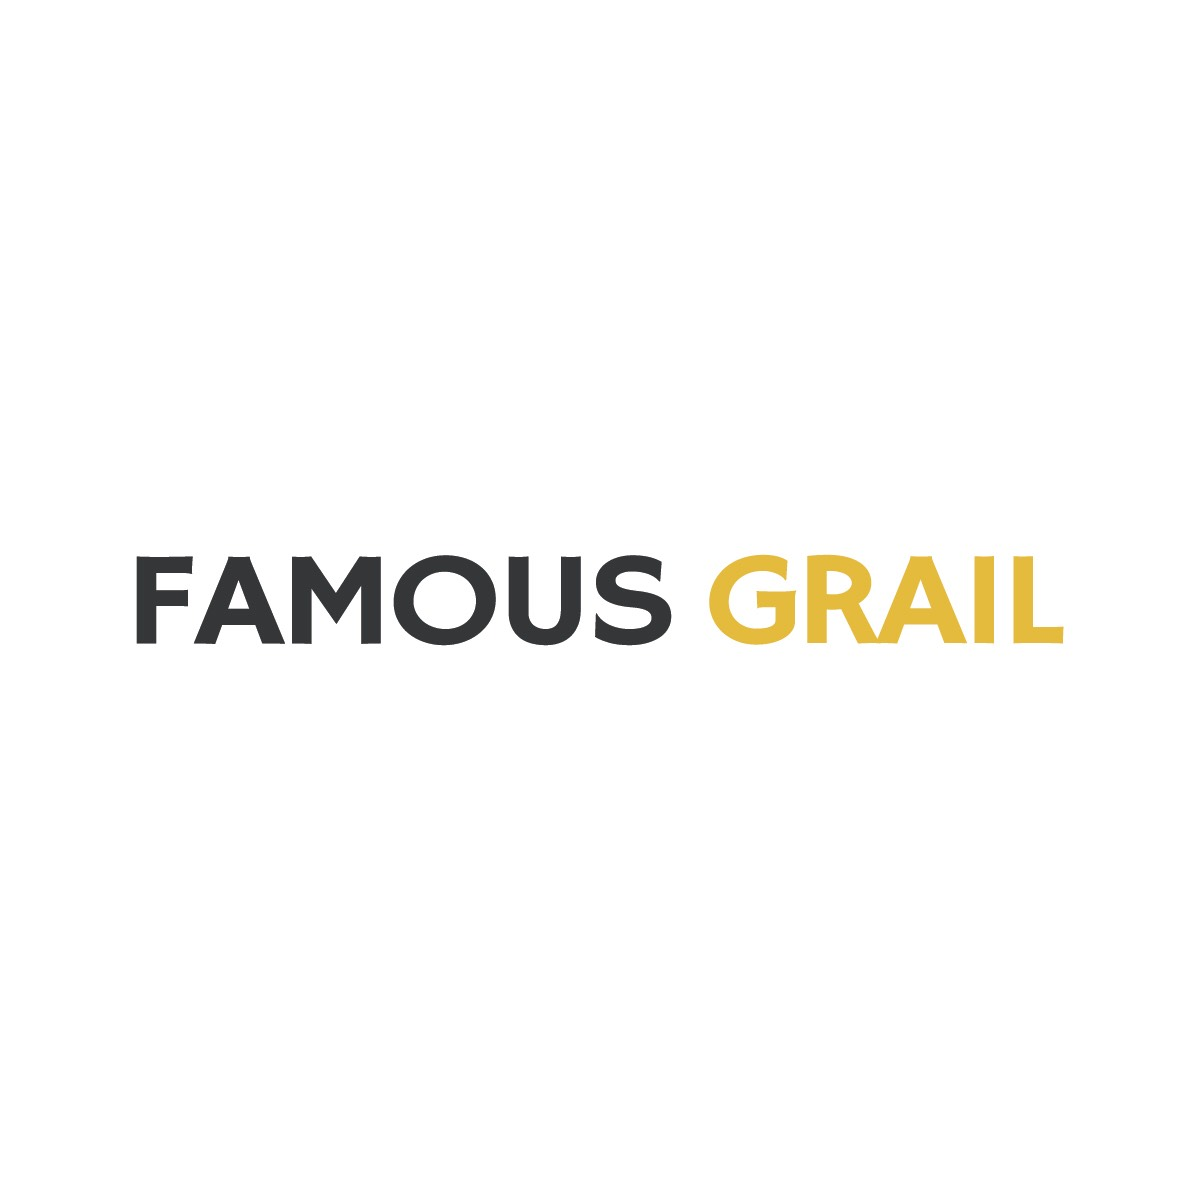 Bump profile picture for @famousgrail